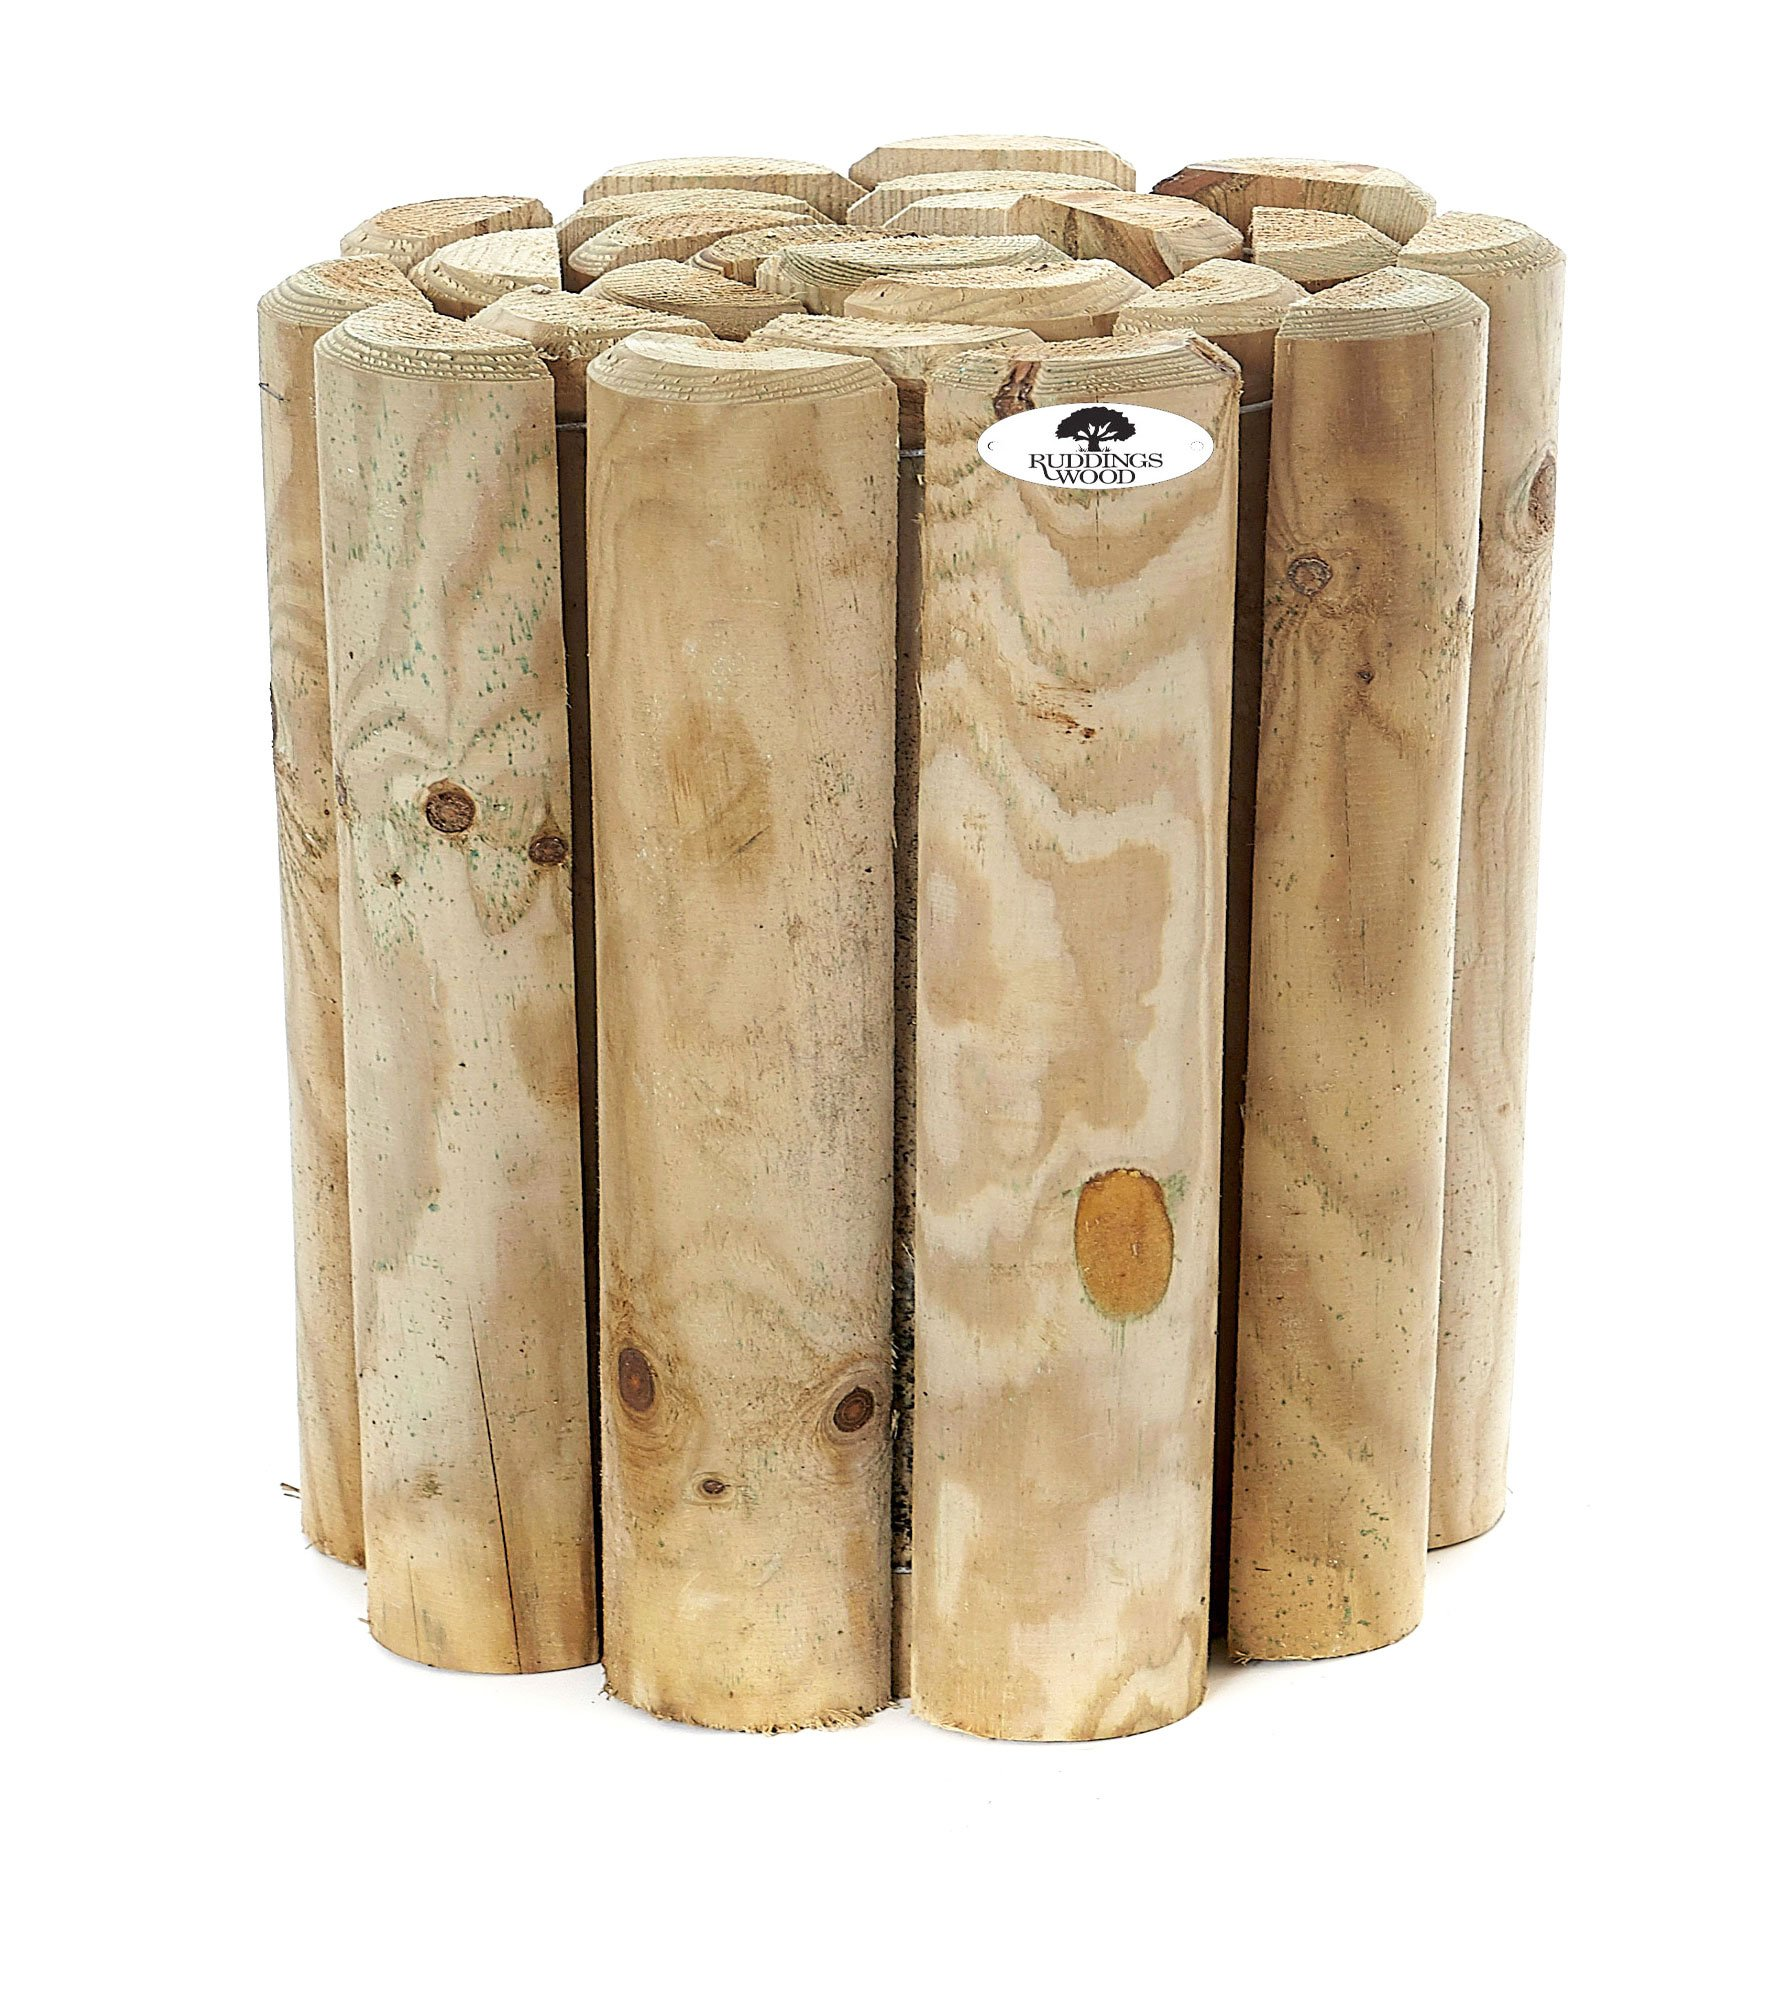 Wooden Border Garden Lawn Edging Pack of 2 x 6 High Log Rolls by Ruddings Wood